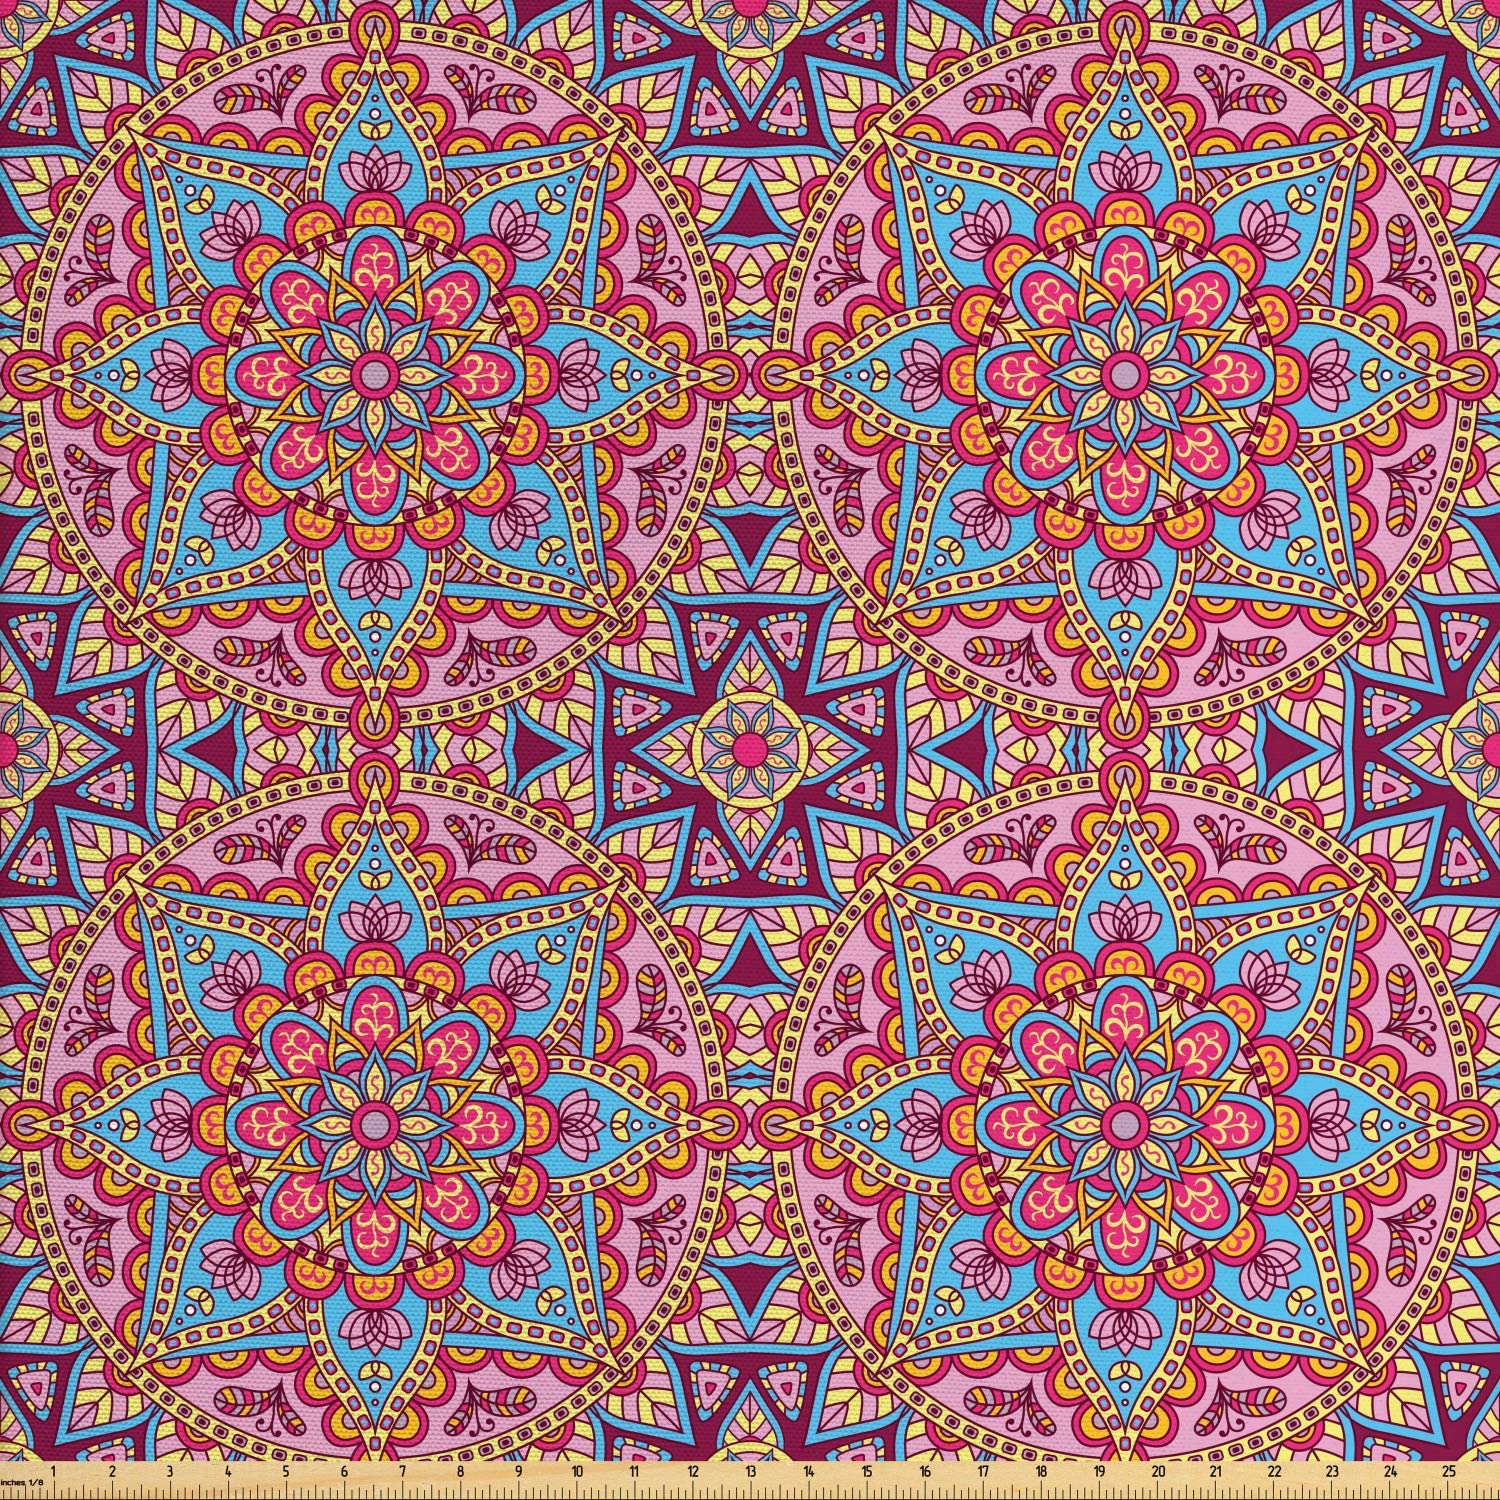 Ambesonne Purple Mandala Fabric by The Yard, Hippie Style Eastern in Moroccan Vivid Tones Motif, Decorative Fabric for Upholstery and Home Accents, 1 Yard, Pastel Pink